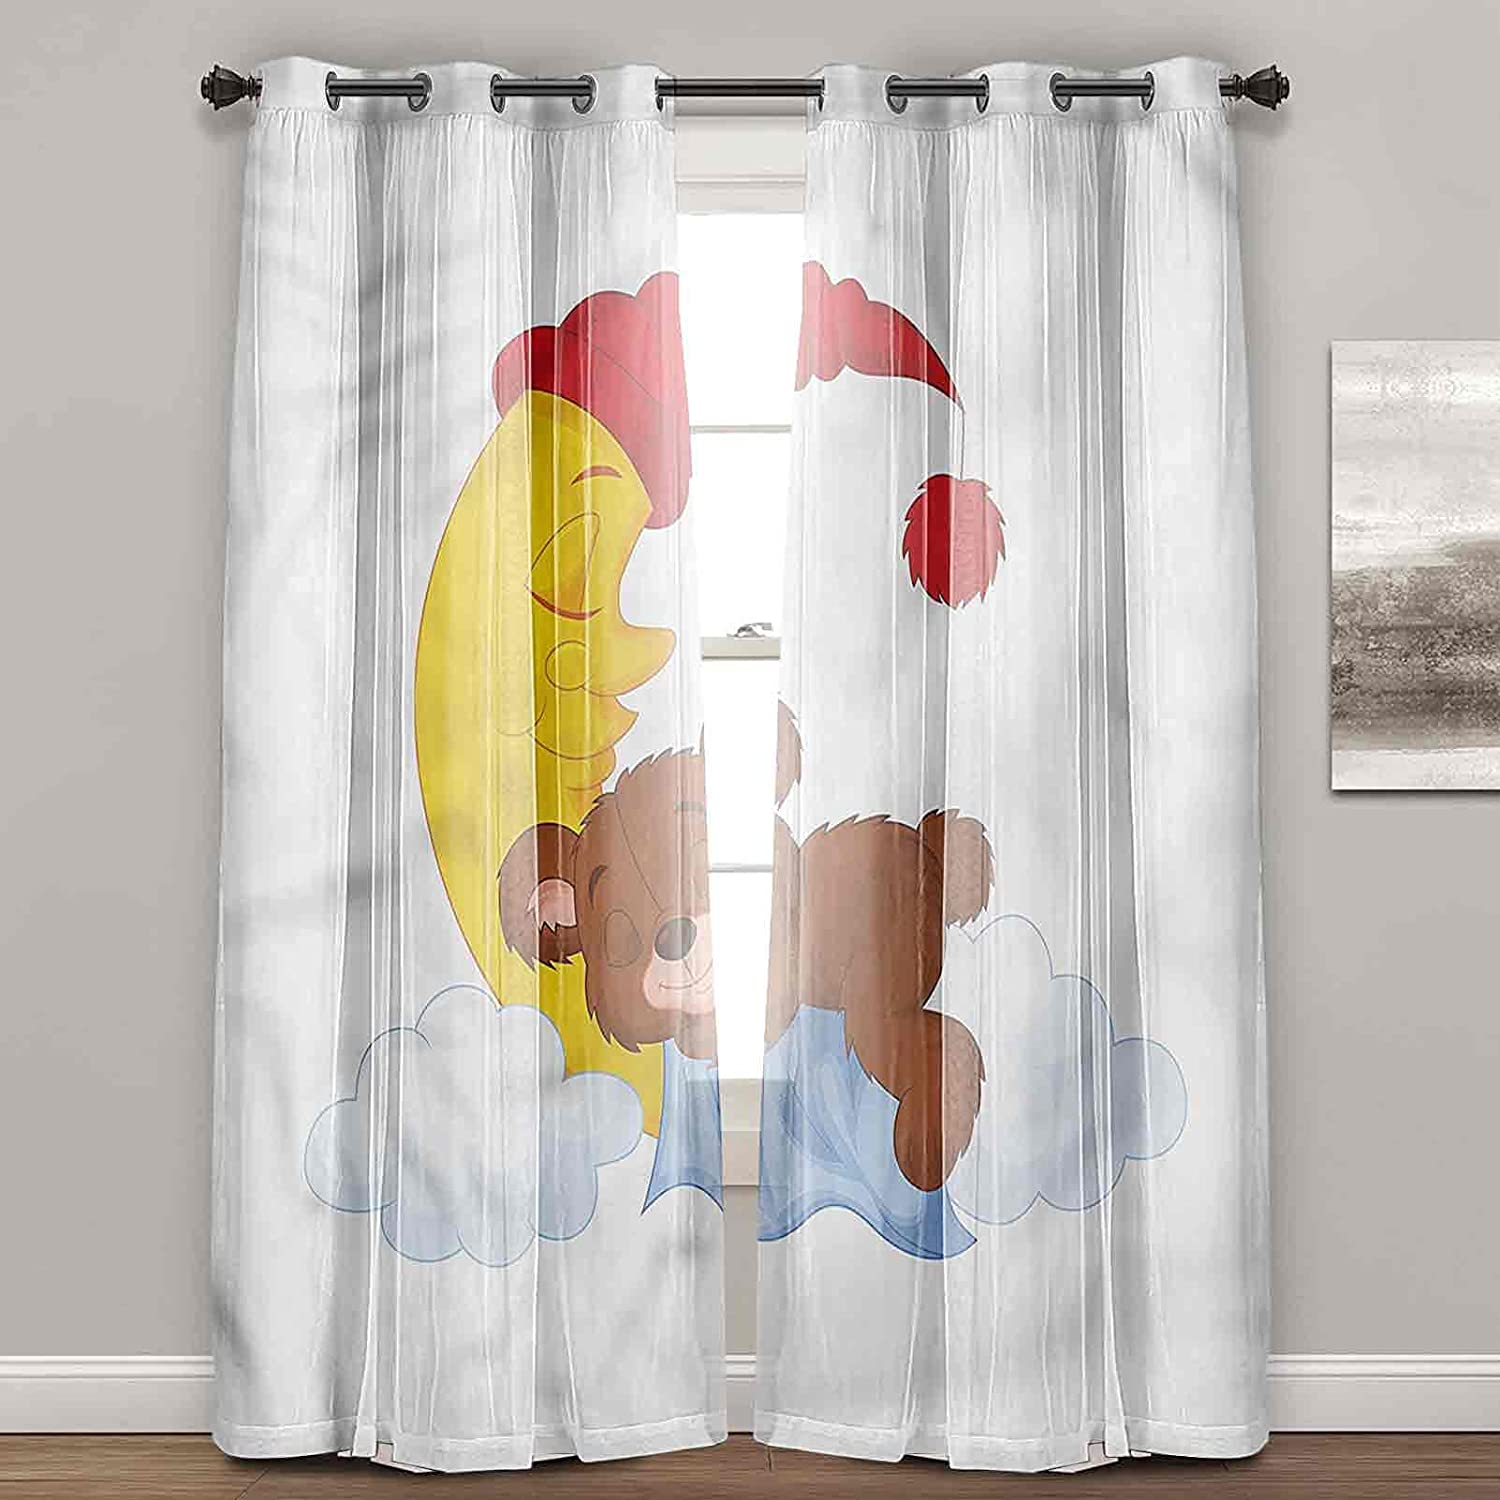 Japan's largest assortment Black Out Curtains Bear Kids Cartoon Drapes Baby L Moon favorite for on